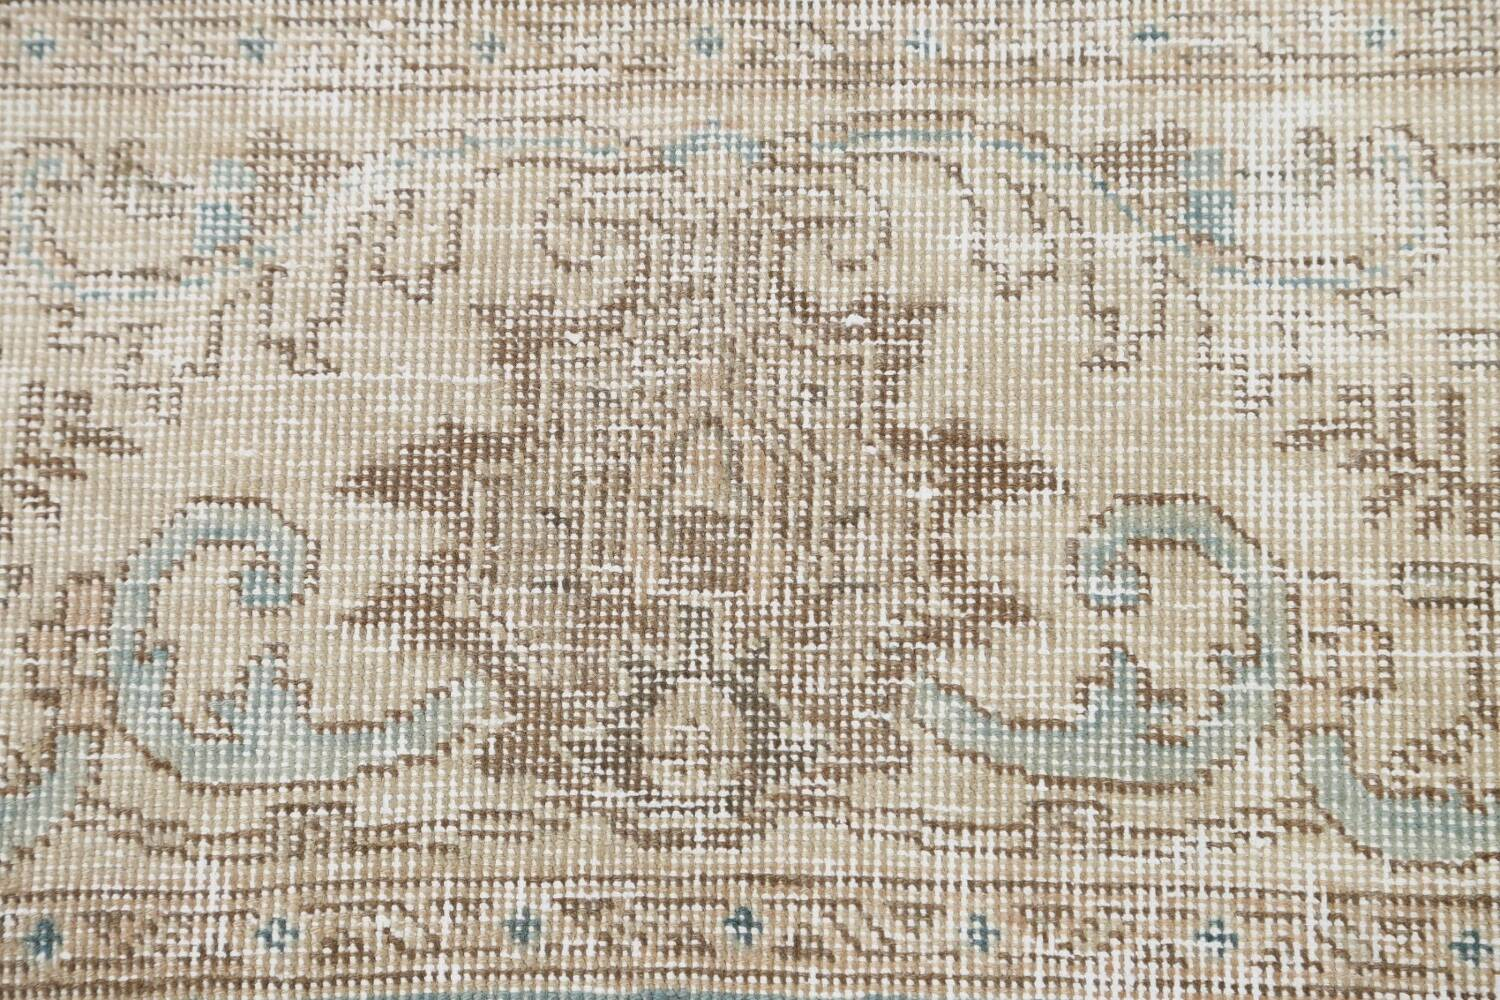 Muted Floral Tabriz Persian Area Rug 10x11 image 9